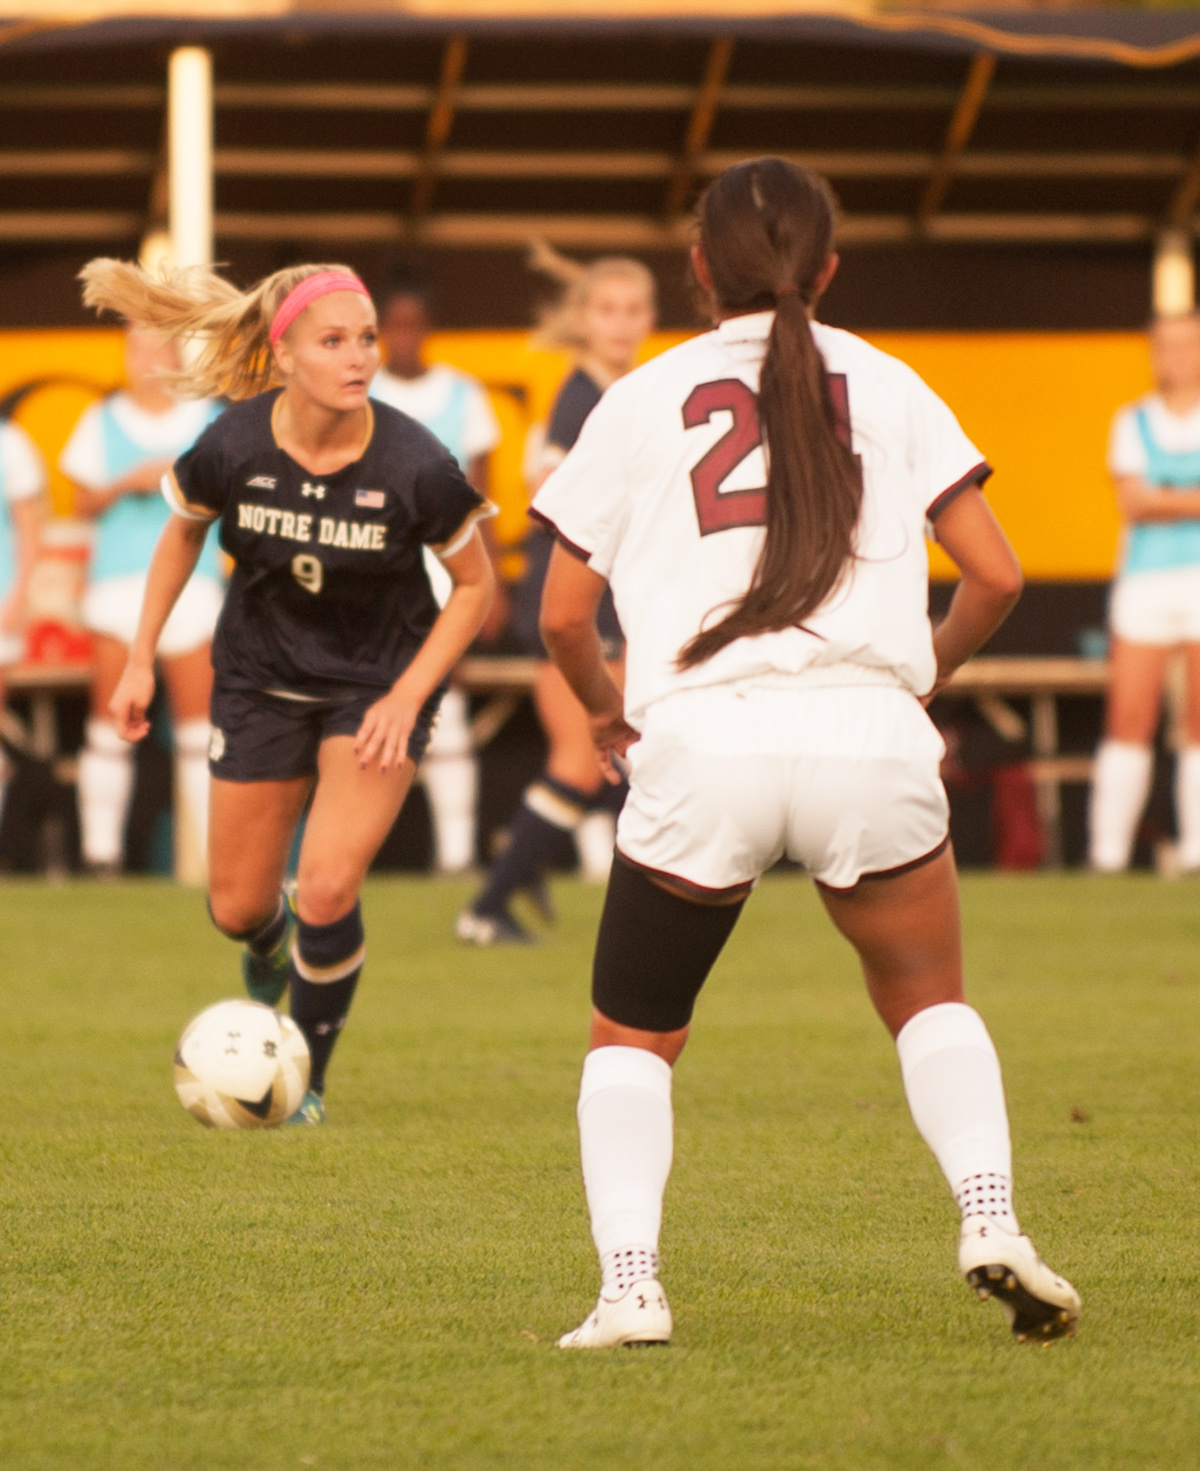 Irish sophomore forward Natalie Jacobs surveys the field looking to pass during Notre Dame's 1-0 loss to South Carolina on Sept. 1 at Alumni Stadium.